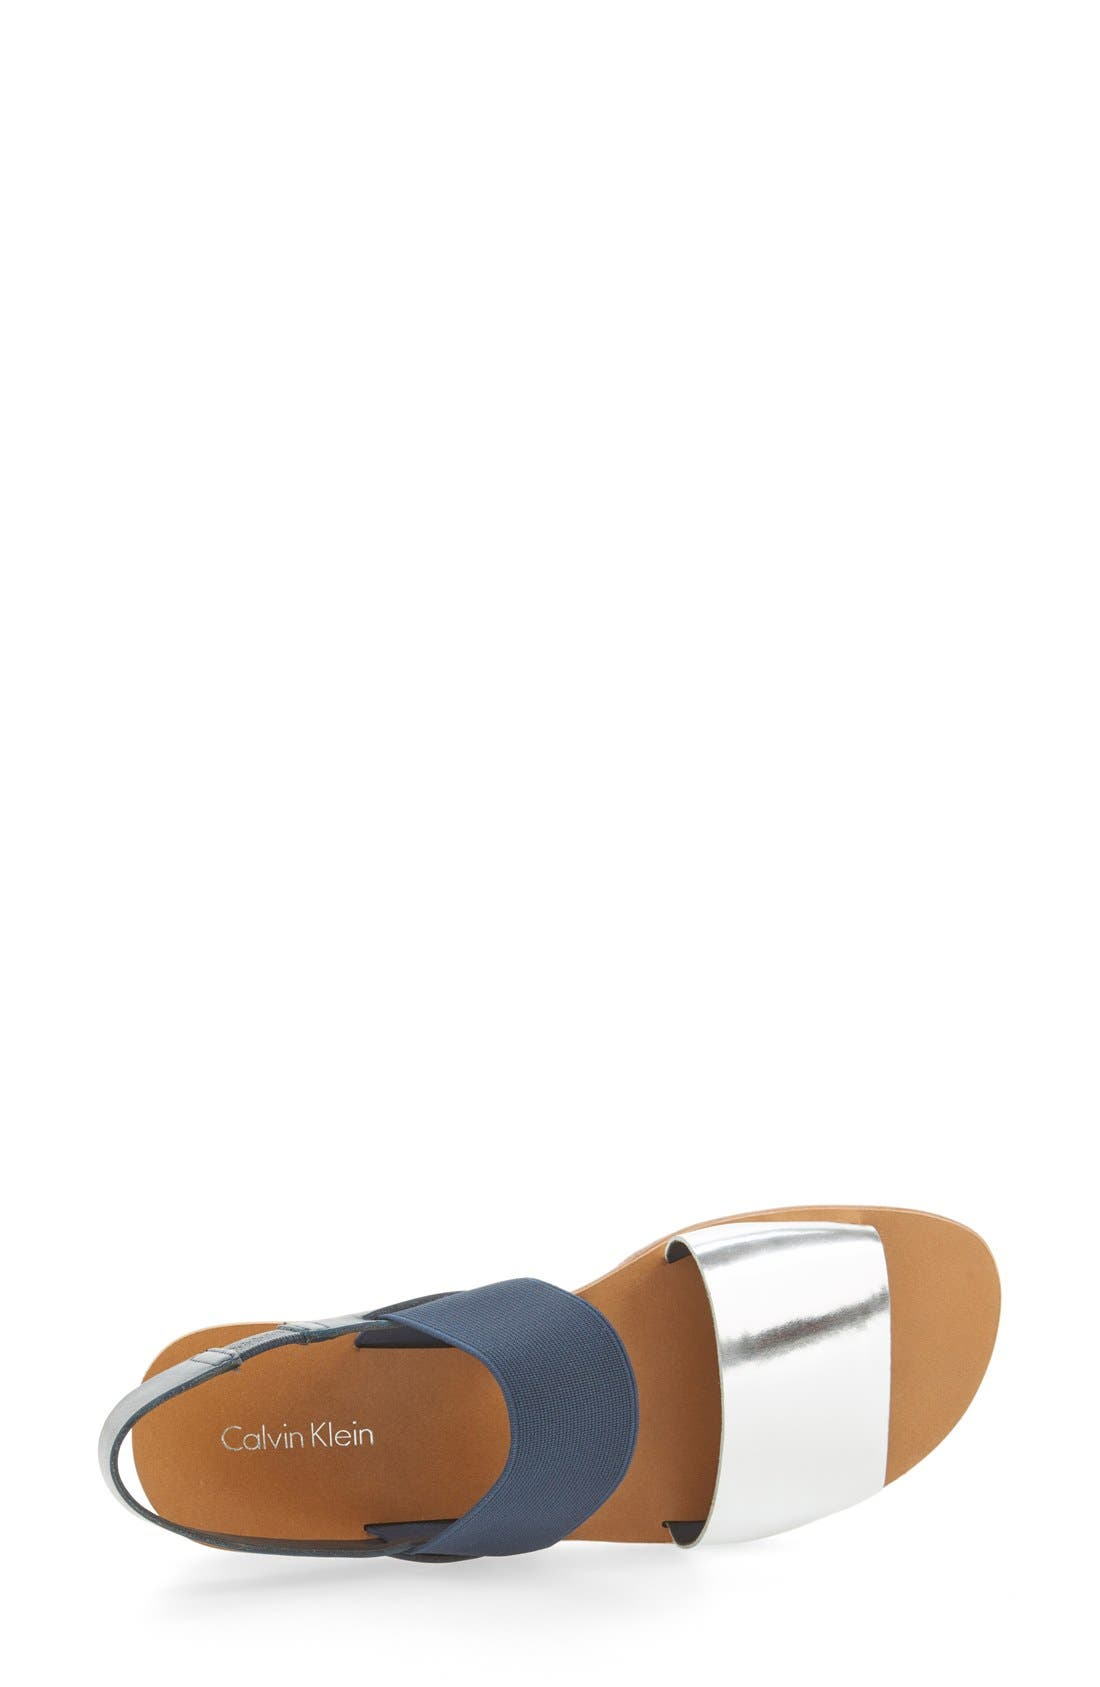 Alternate Image 3  - Calvin Klein 'Prisma' Double Band Sport Sandal (Women)